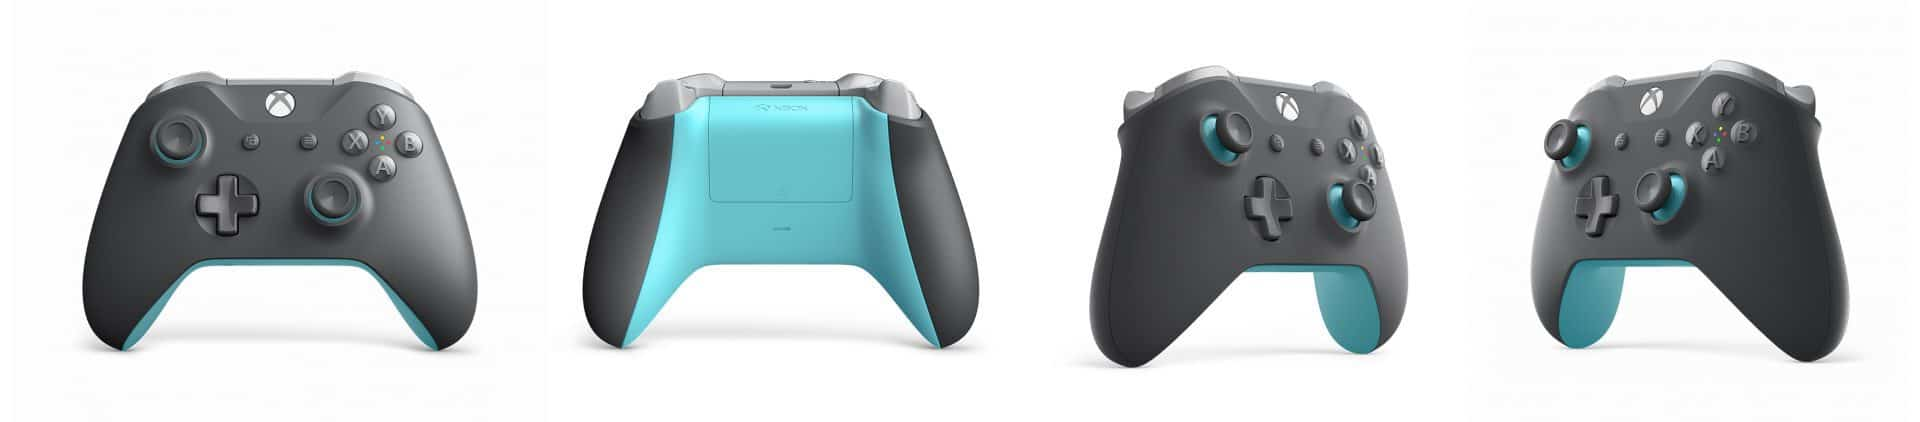 Microsoft unveils new phantom black and grey/blue xbox controllers - onmsft. Com - august 14, 2018